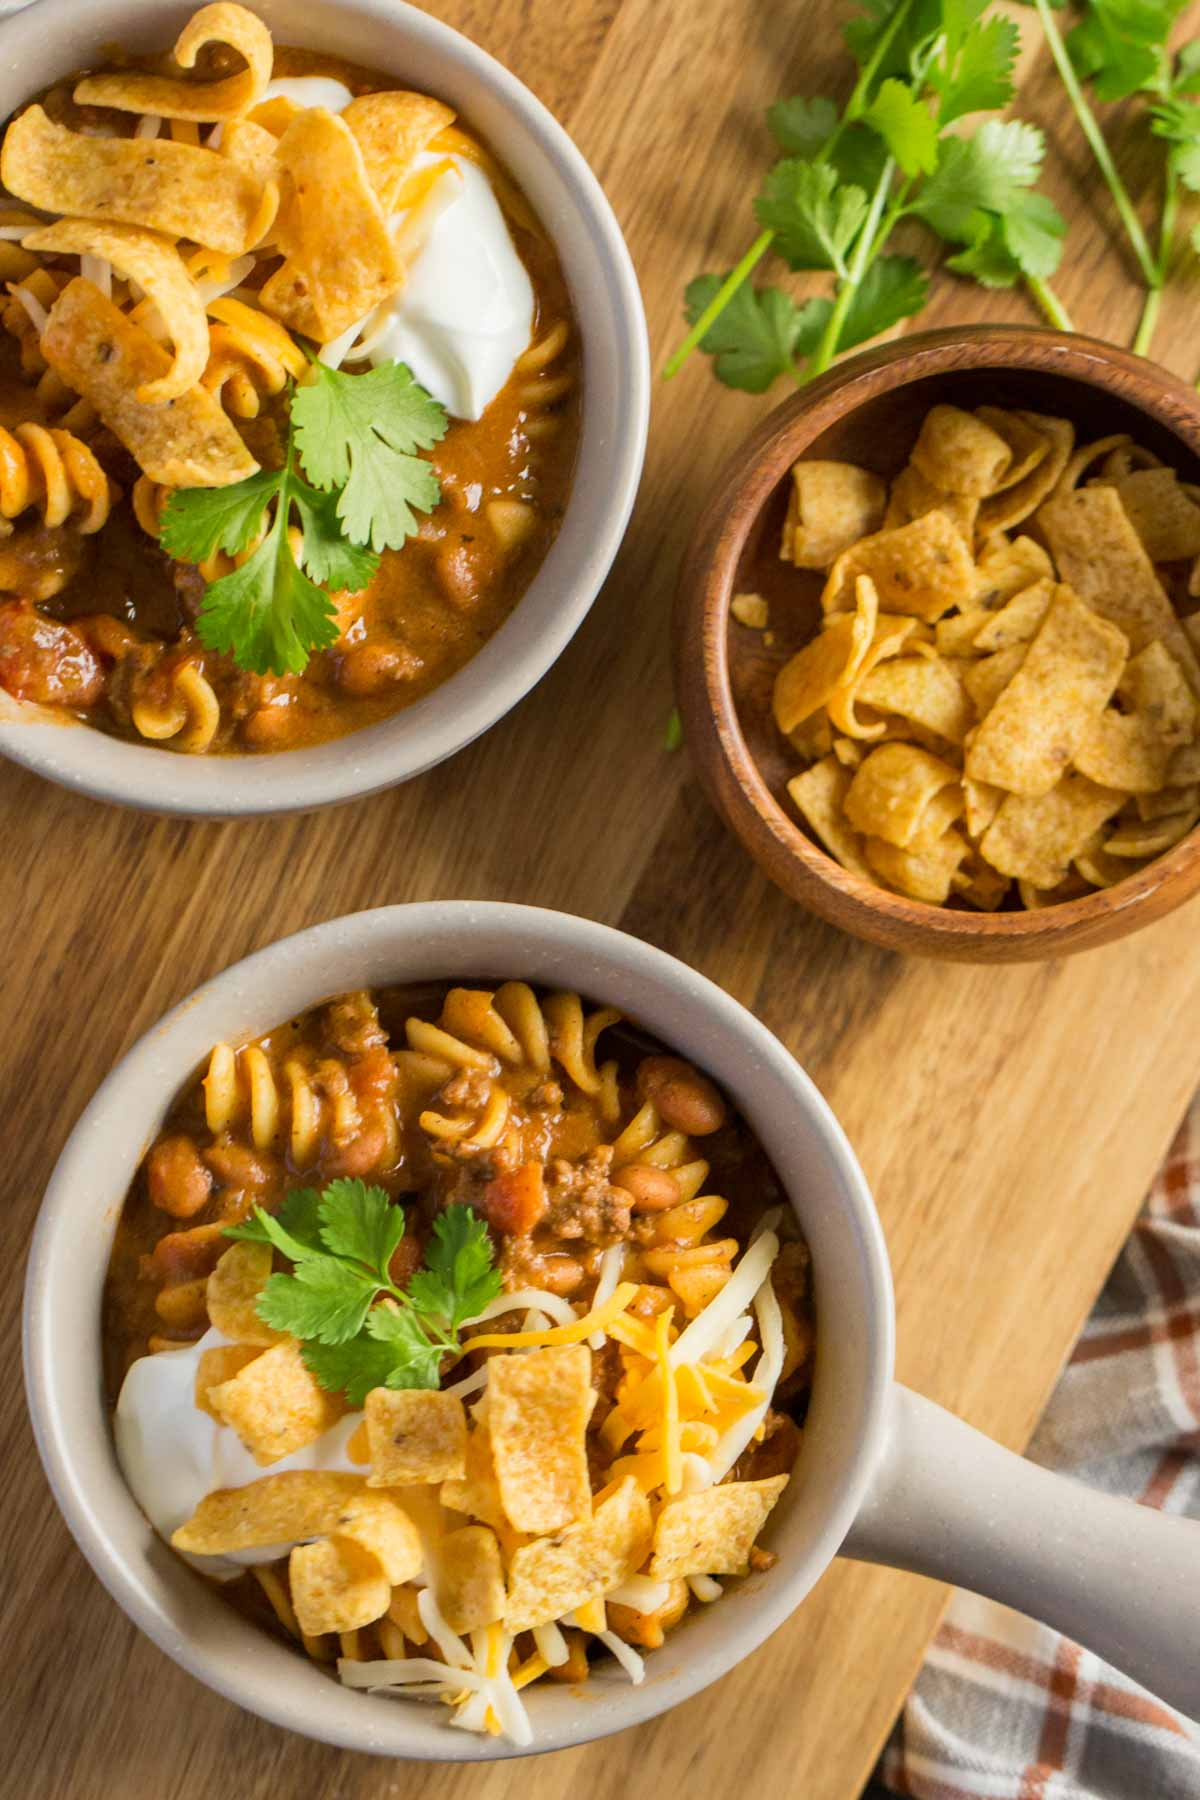 A top down view of two bowls Beef Chili Queso topped with sour cream, Fritos and Cilantro on a wooden board.